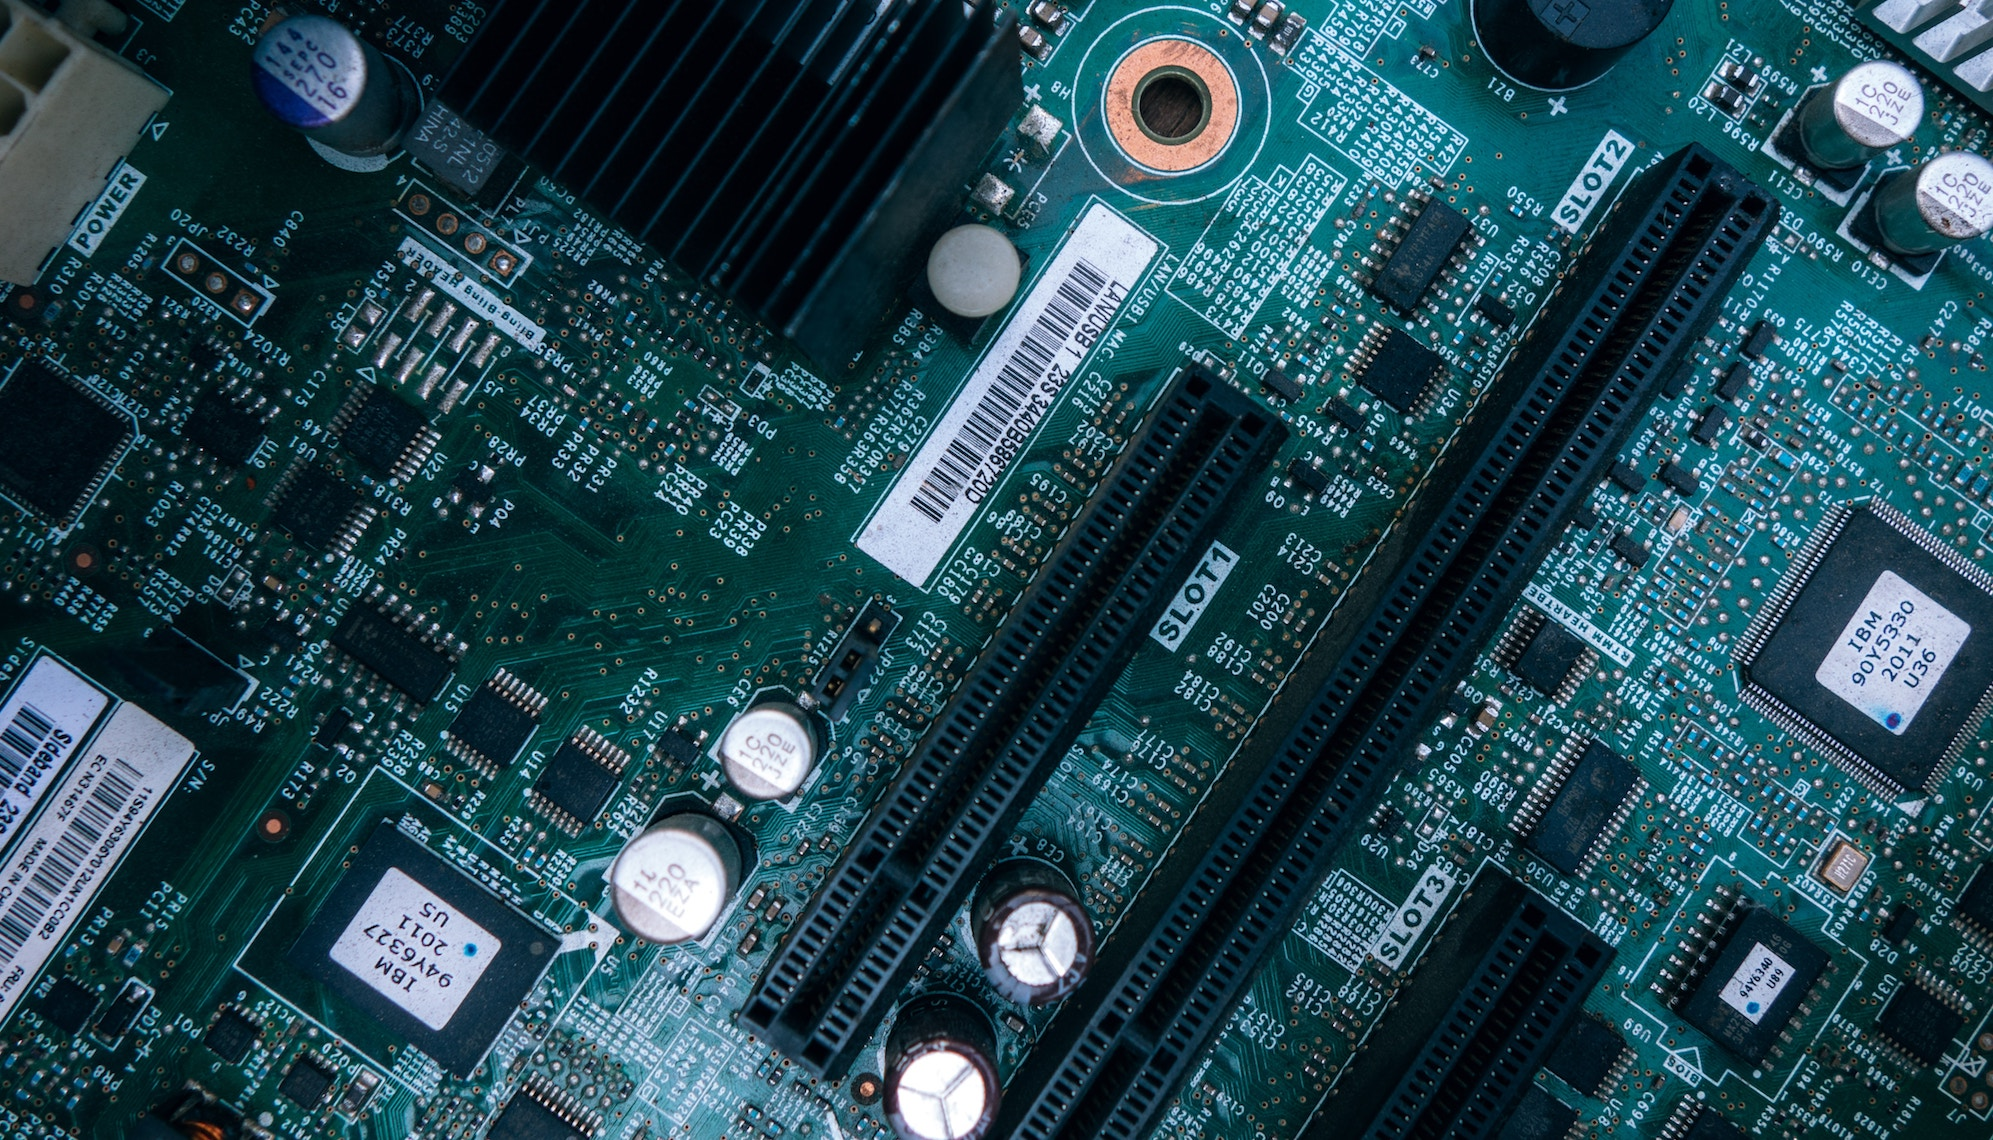 close up image of motherboard